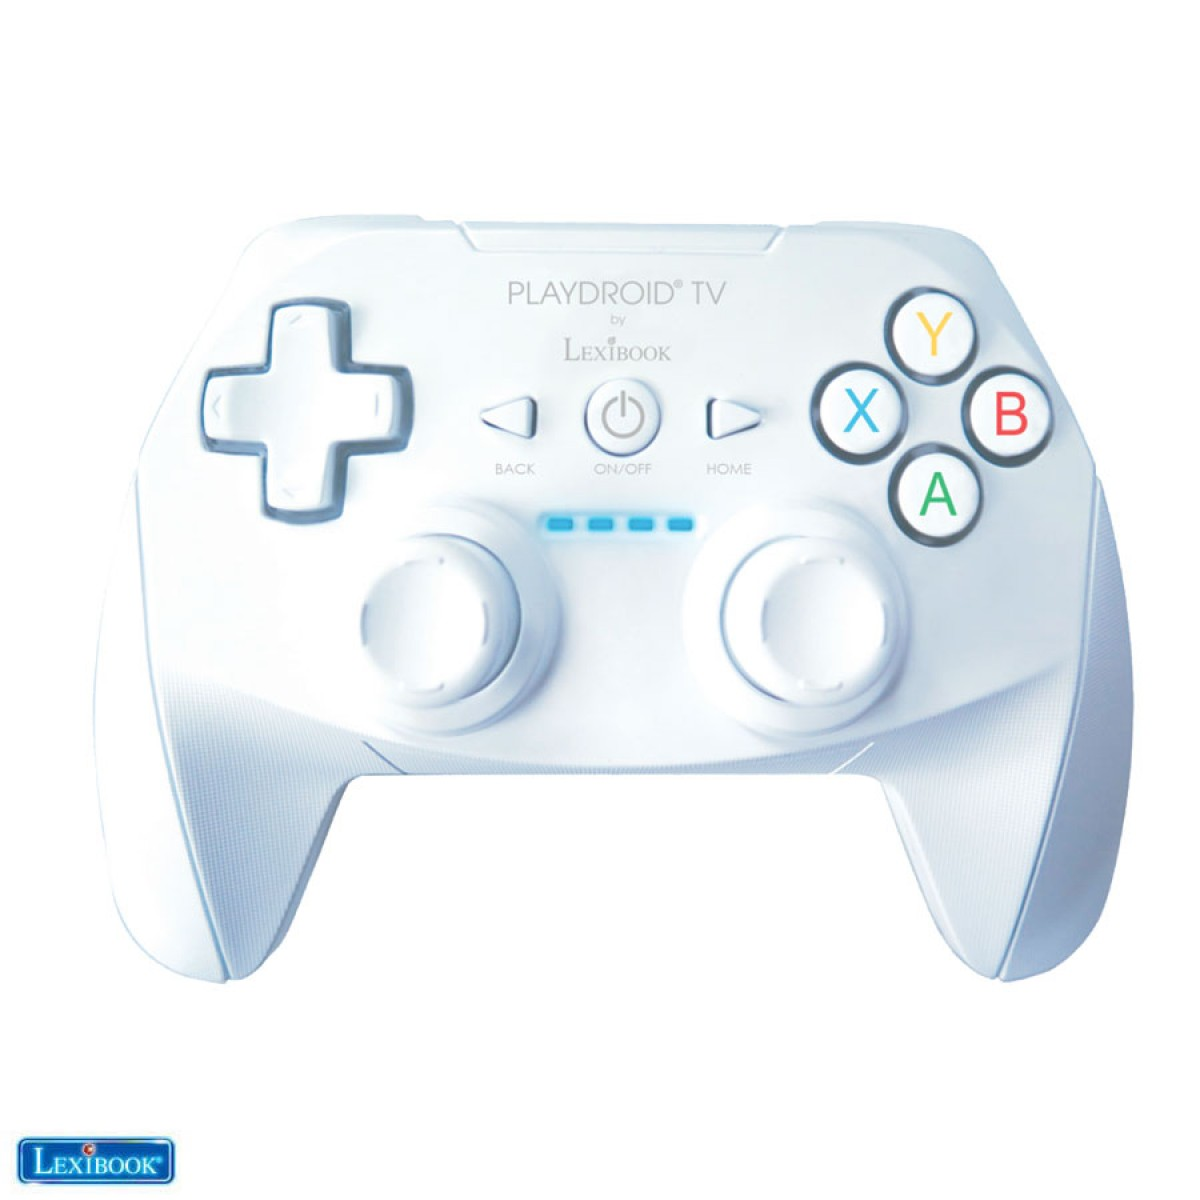 LBOXA501 - Manette additionnelle pour Playdroid TV Lexibook